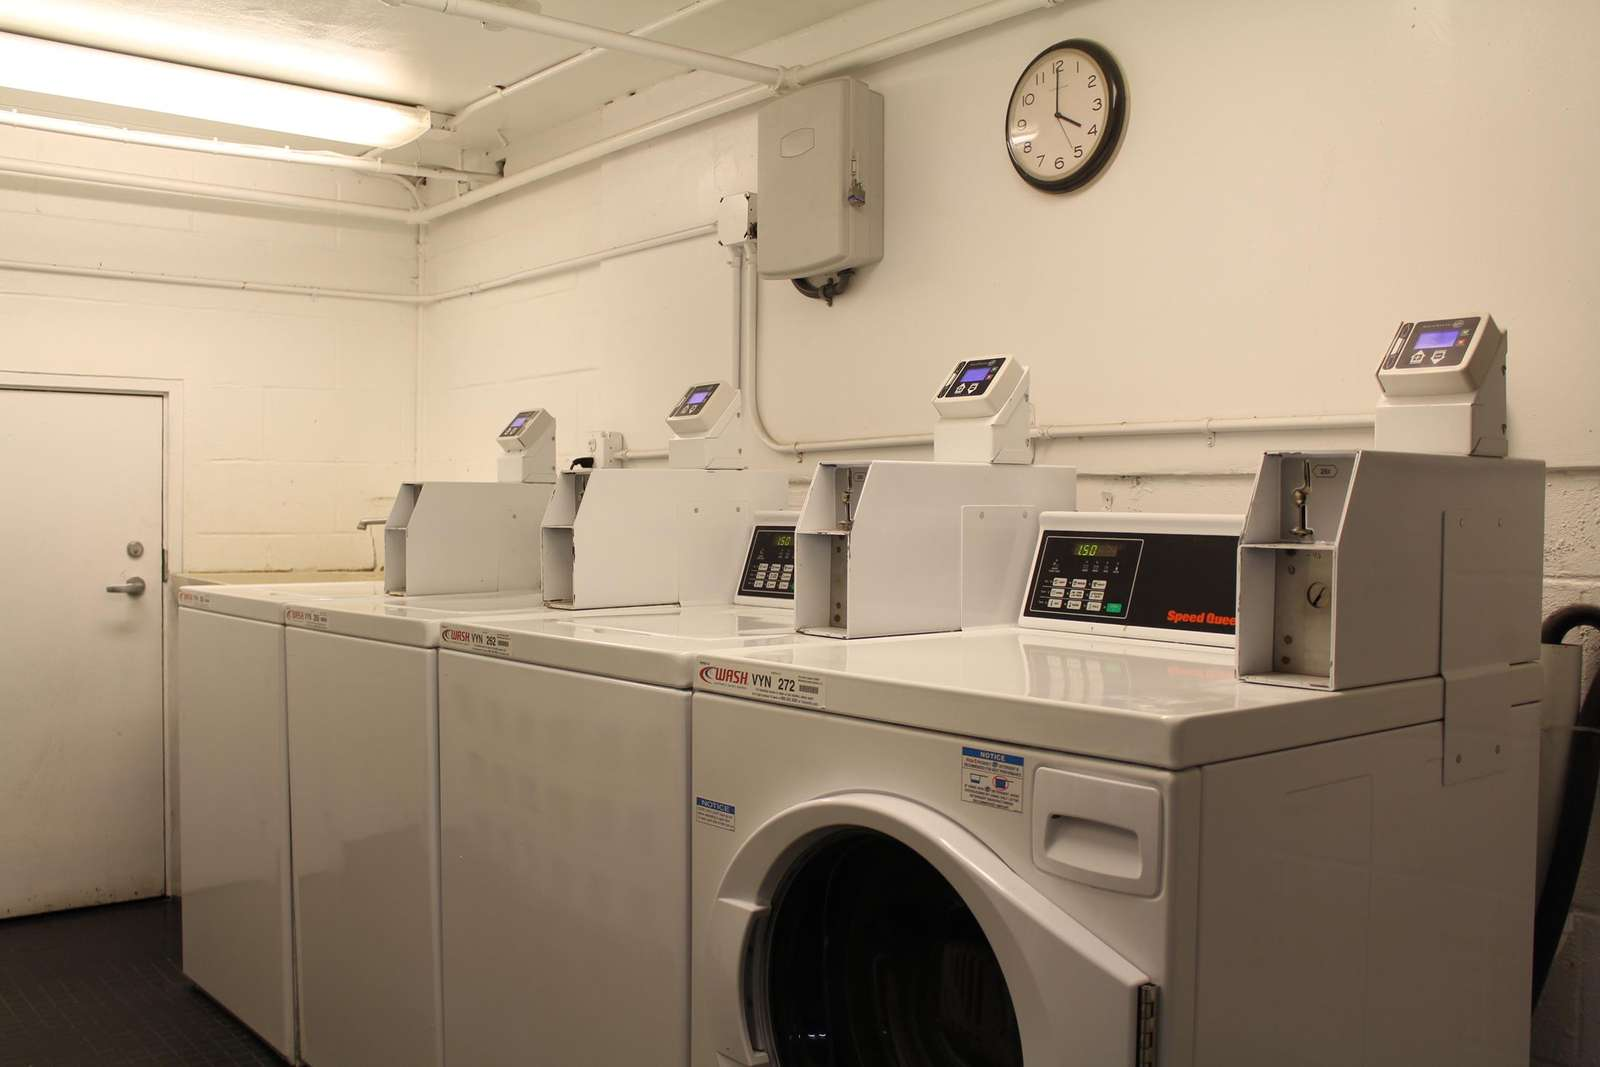 Coin and CC operated common area laundry